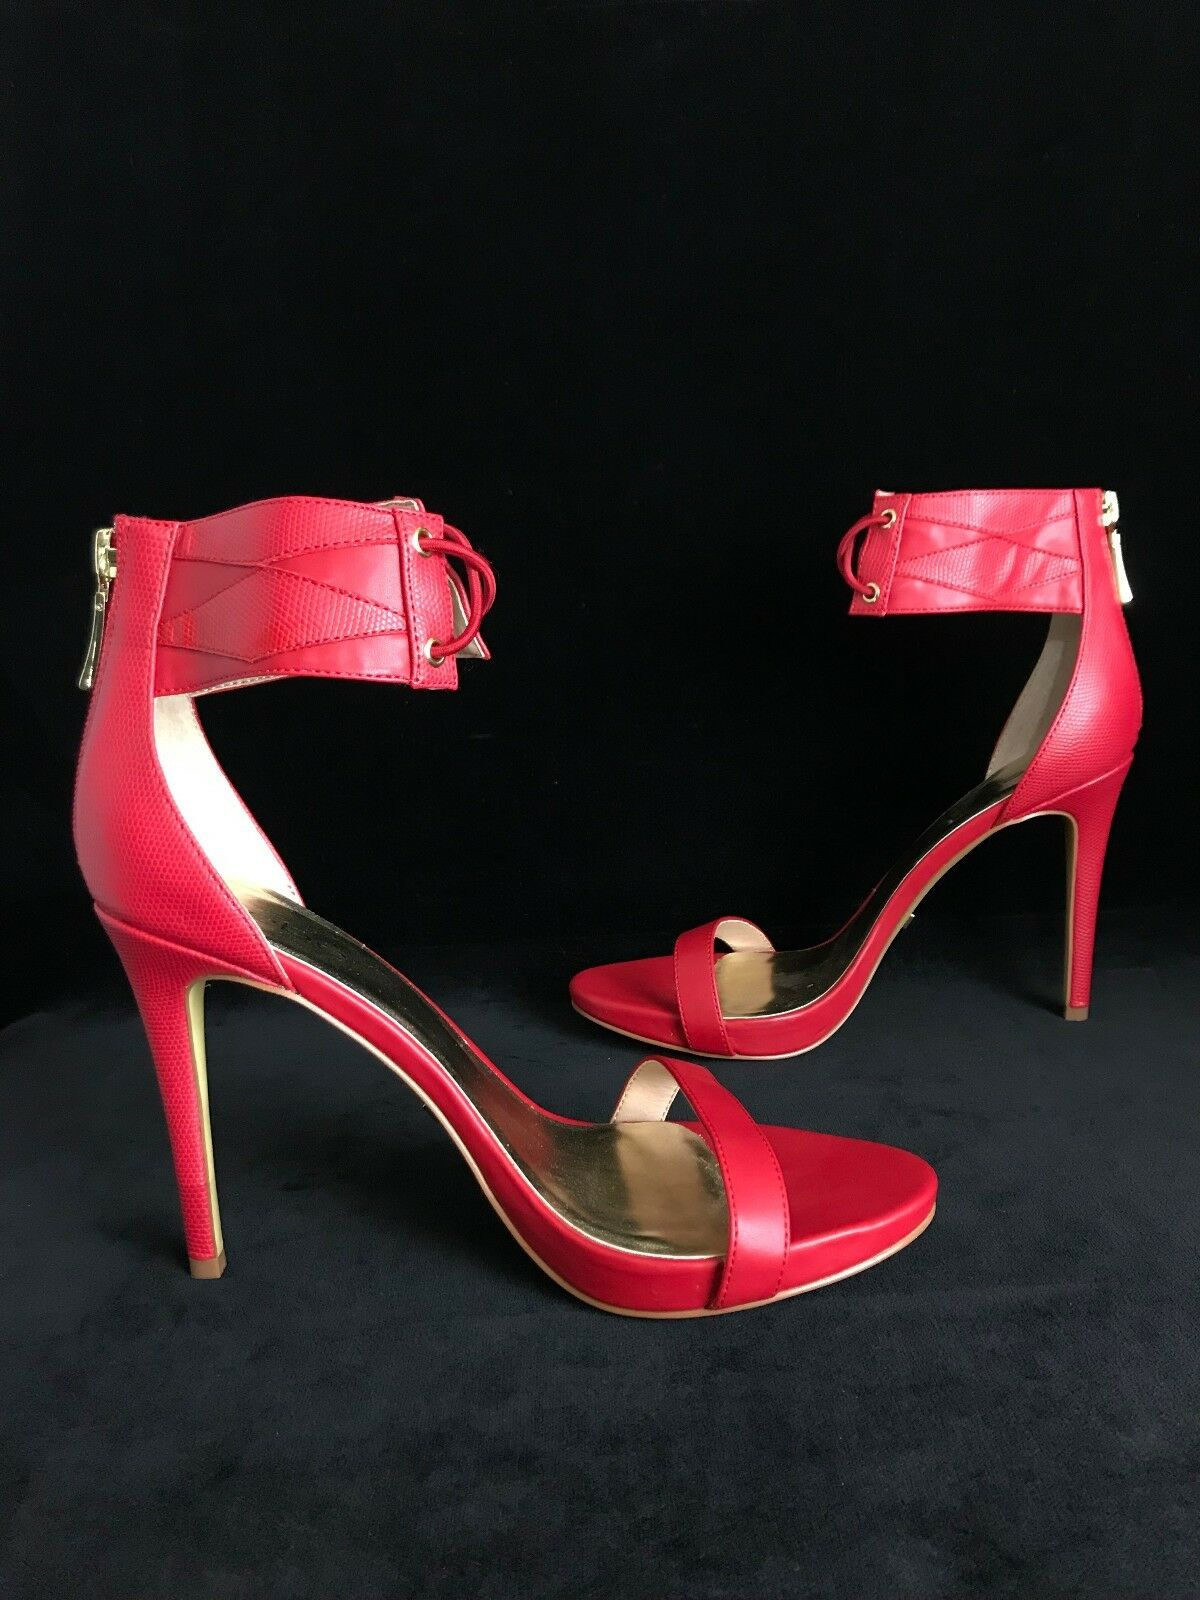 NEW Bebe red high heels sandals ankle straps stiletto heels Sz9 zip closure